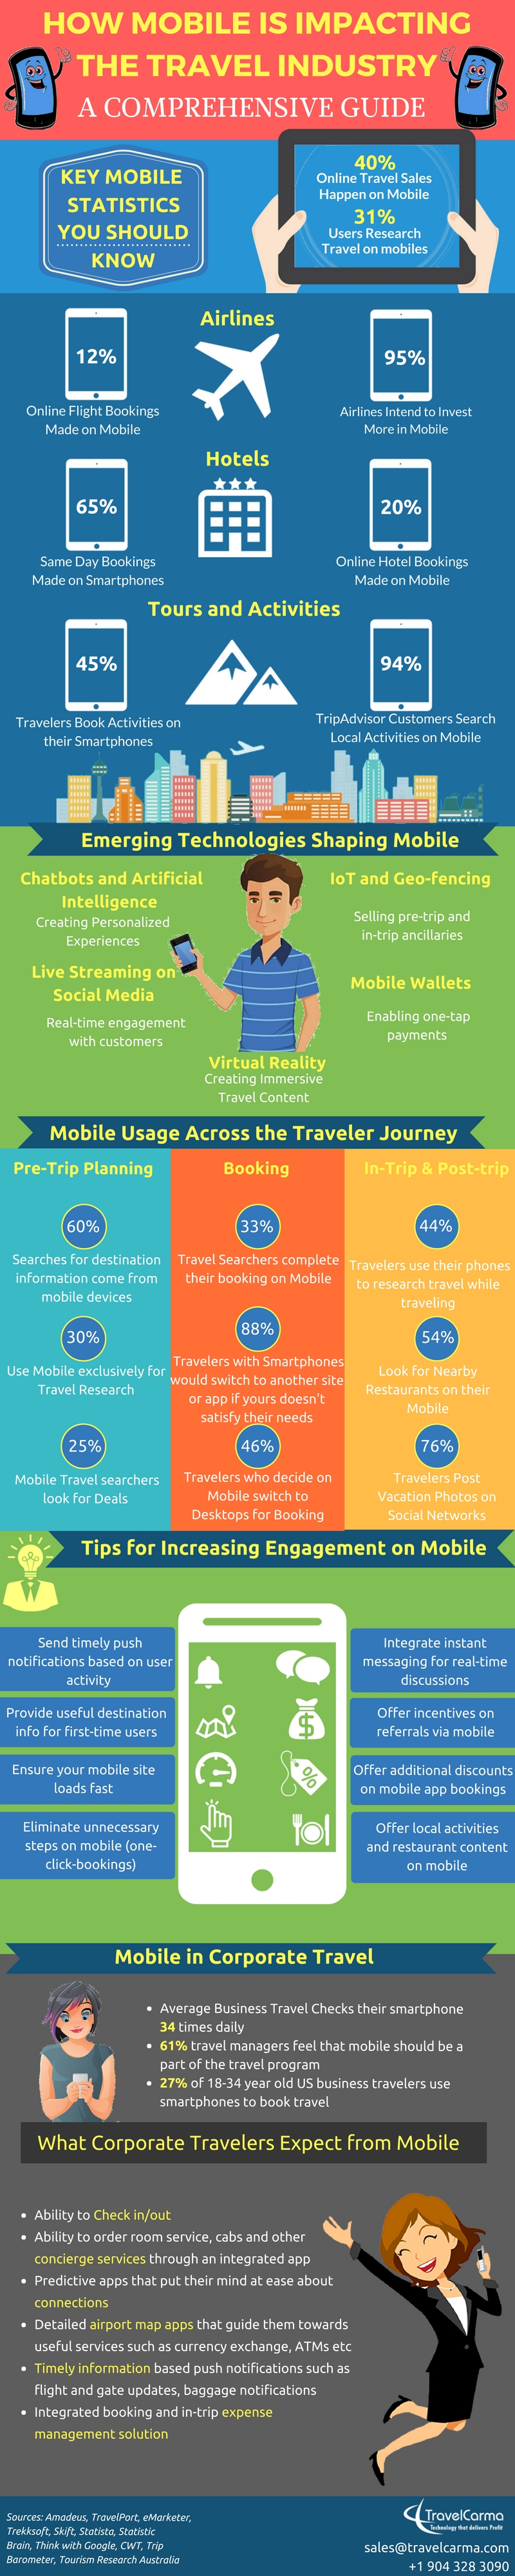 How mobile is impacting the travel industry